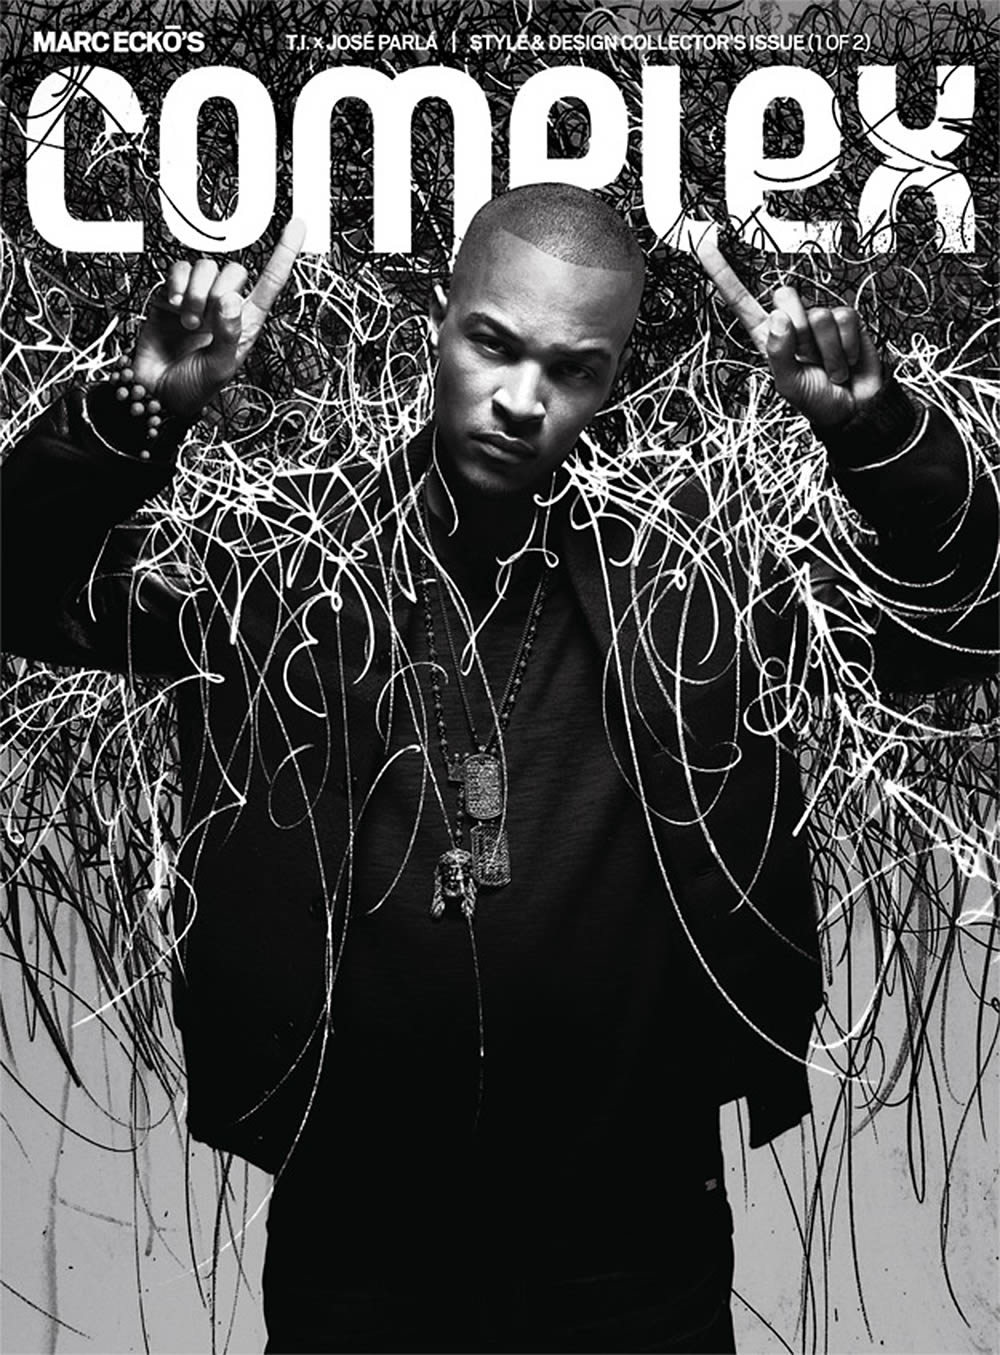 Complex magazine cover with T.I. rapper, art cover design by Jose Parla